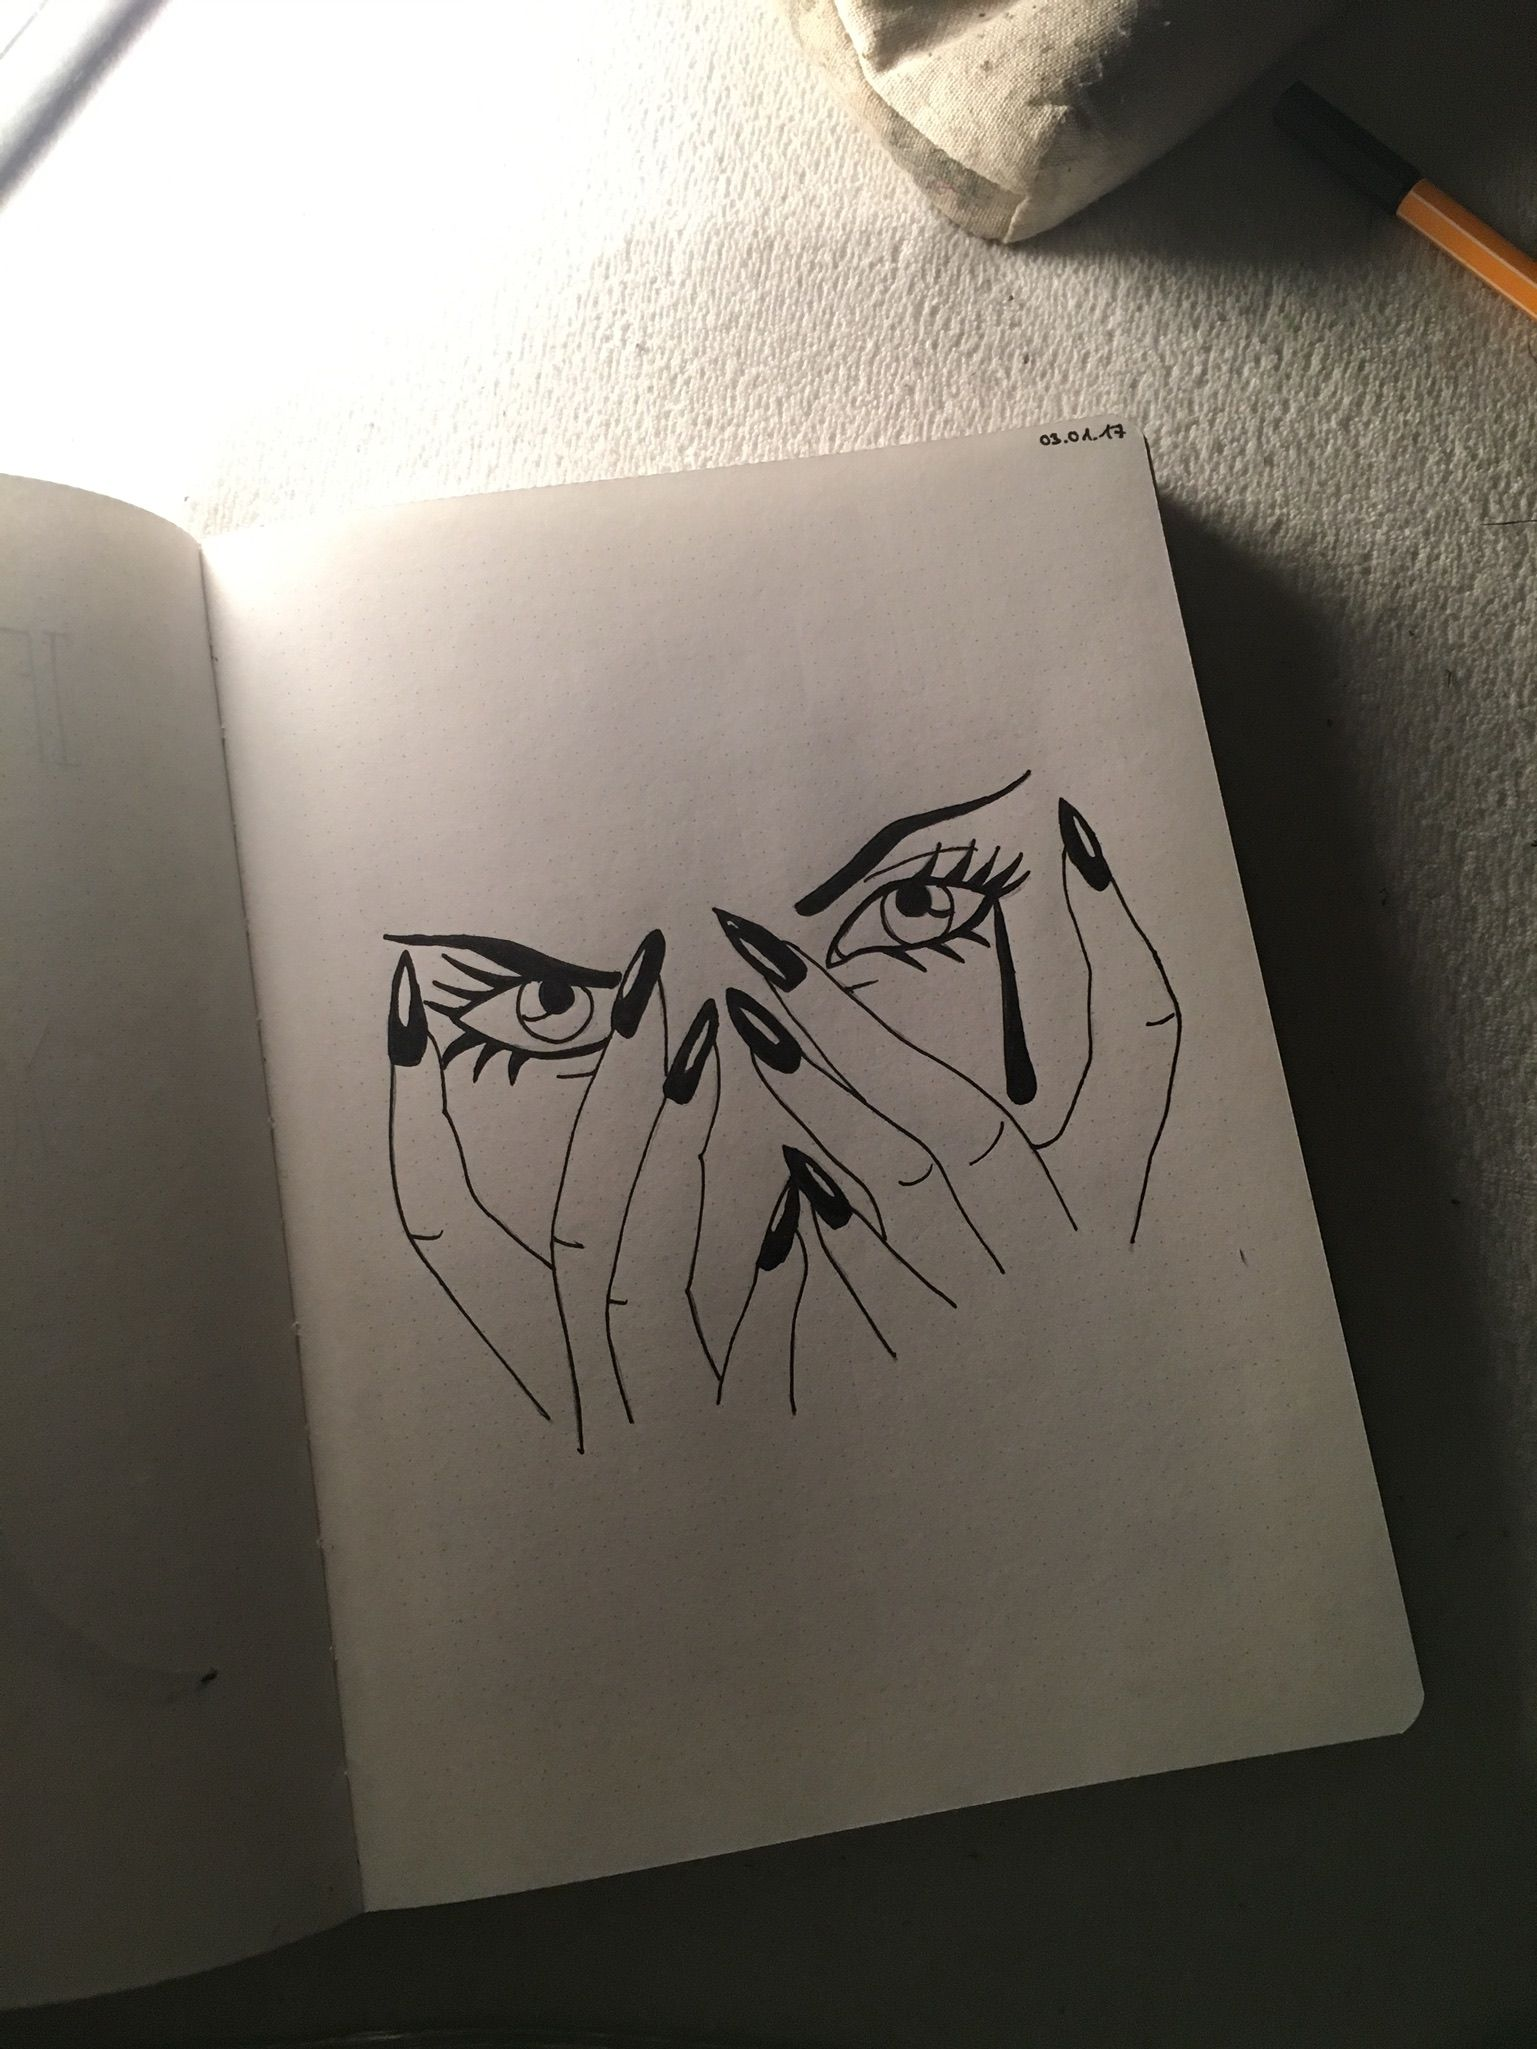 Cry baby drawing drawings simple easy girl cry angry sad eyes handy